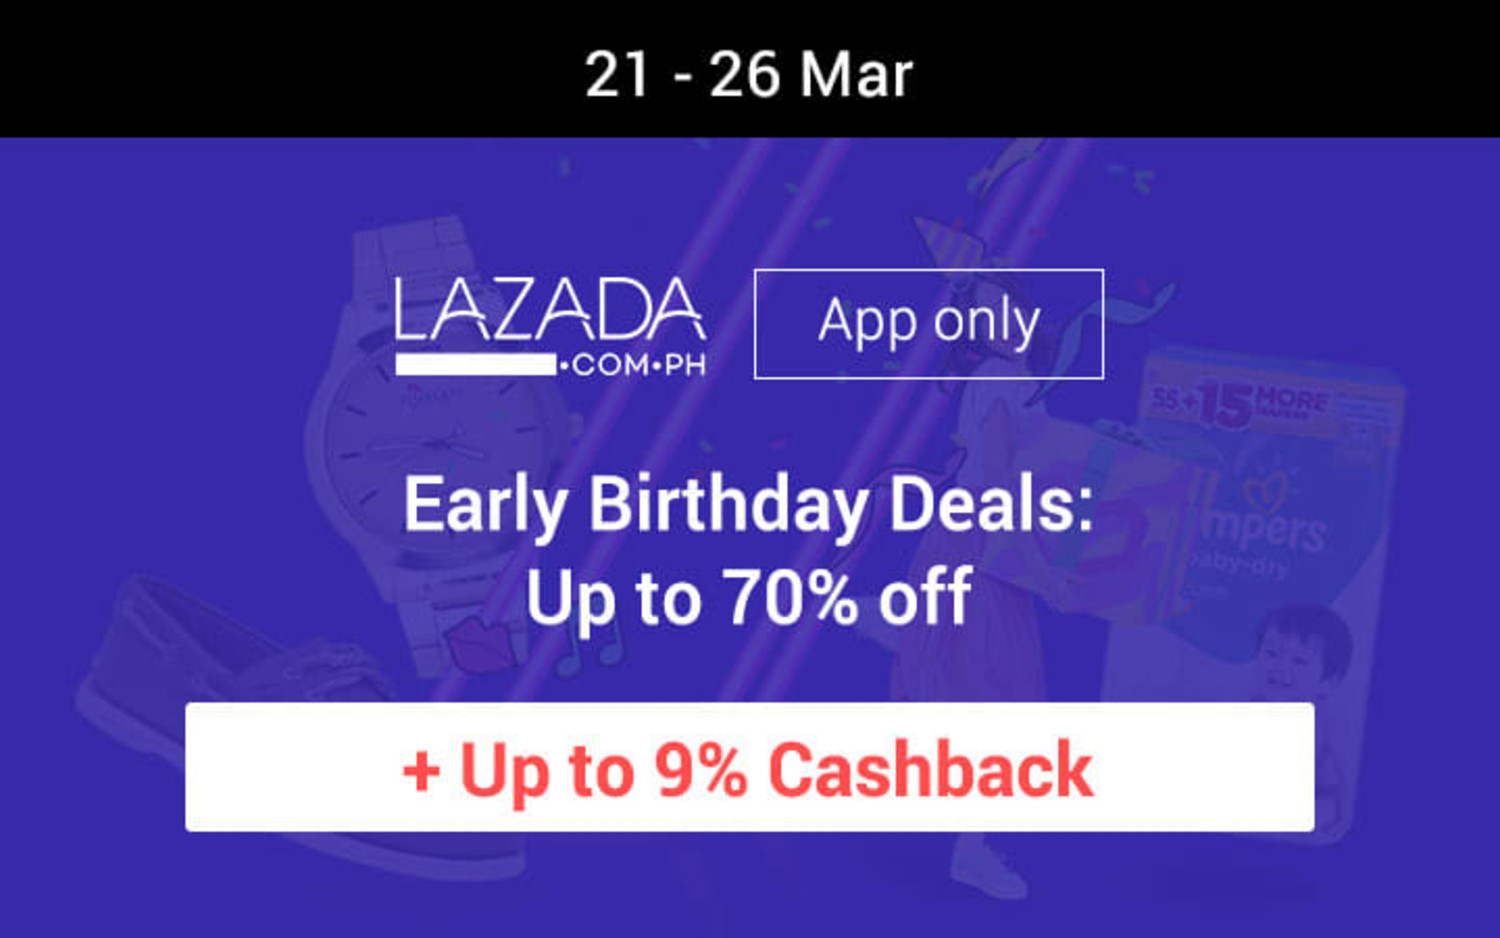 21 - 26 Mar | App only Lazada Early Birthday Deals: Up to 70% off + Up to 9% Cashback